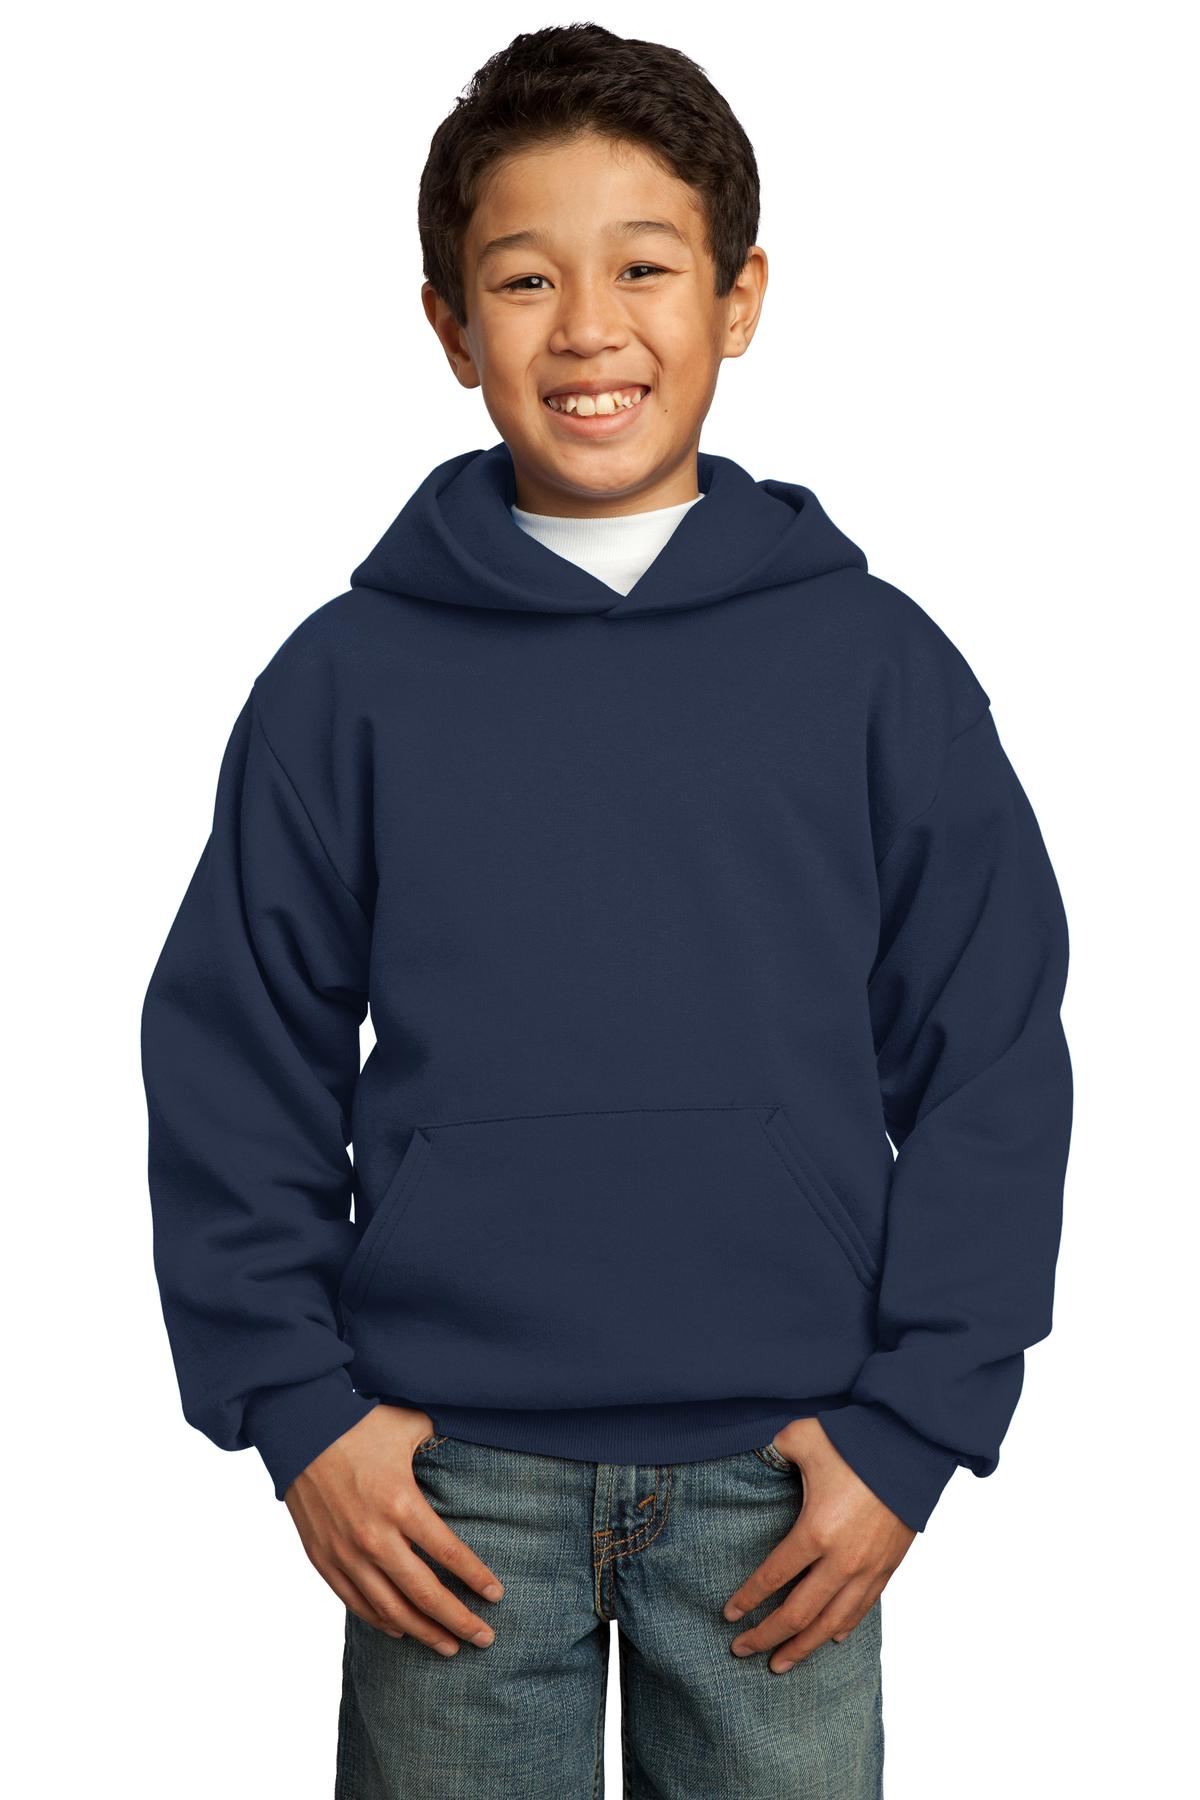 Port & Company ®  - Youth Core Fleece Pullover Hooded Sweatshirt.  PC90YH - Navy